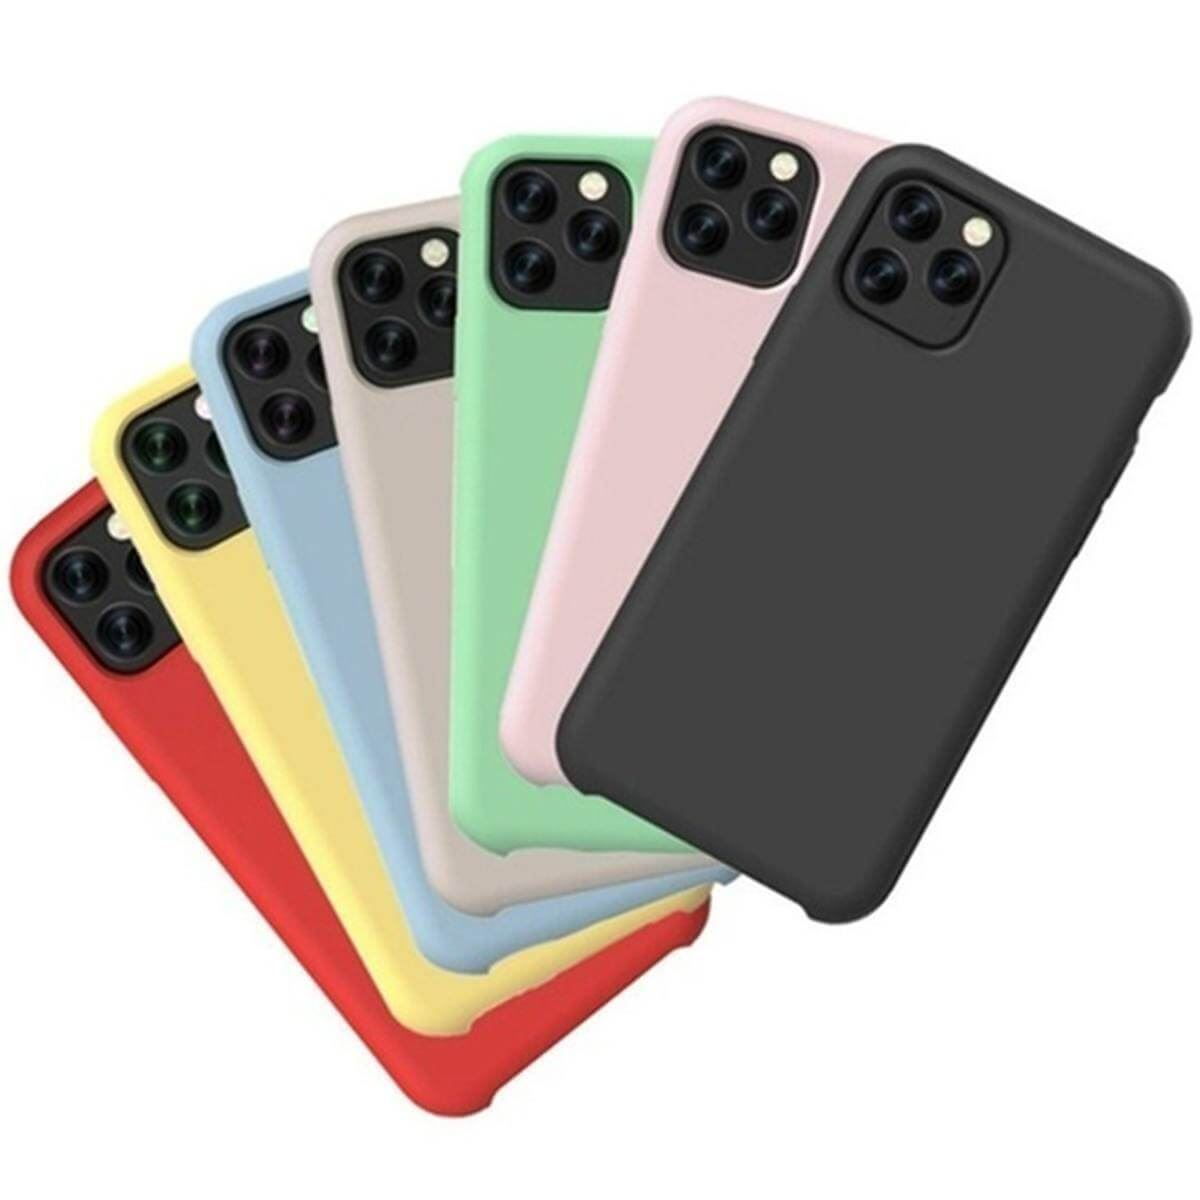 Liquid-Silicone-Shockproof-Case-For-Apple-iPhone-Soft-Matte-Back-Phone-Cover thumbnail 17